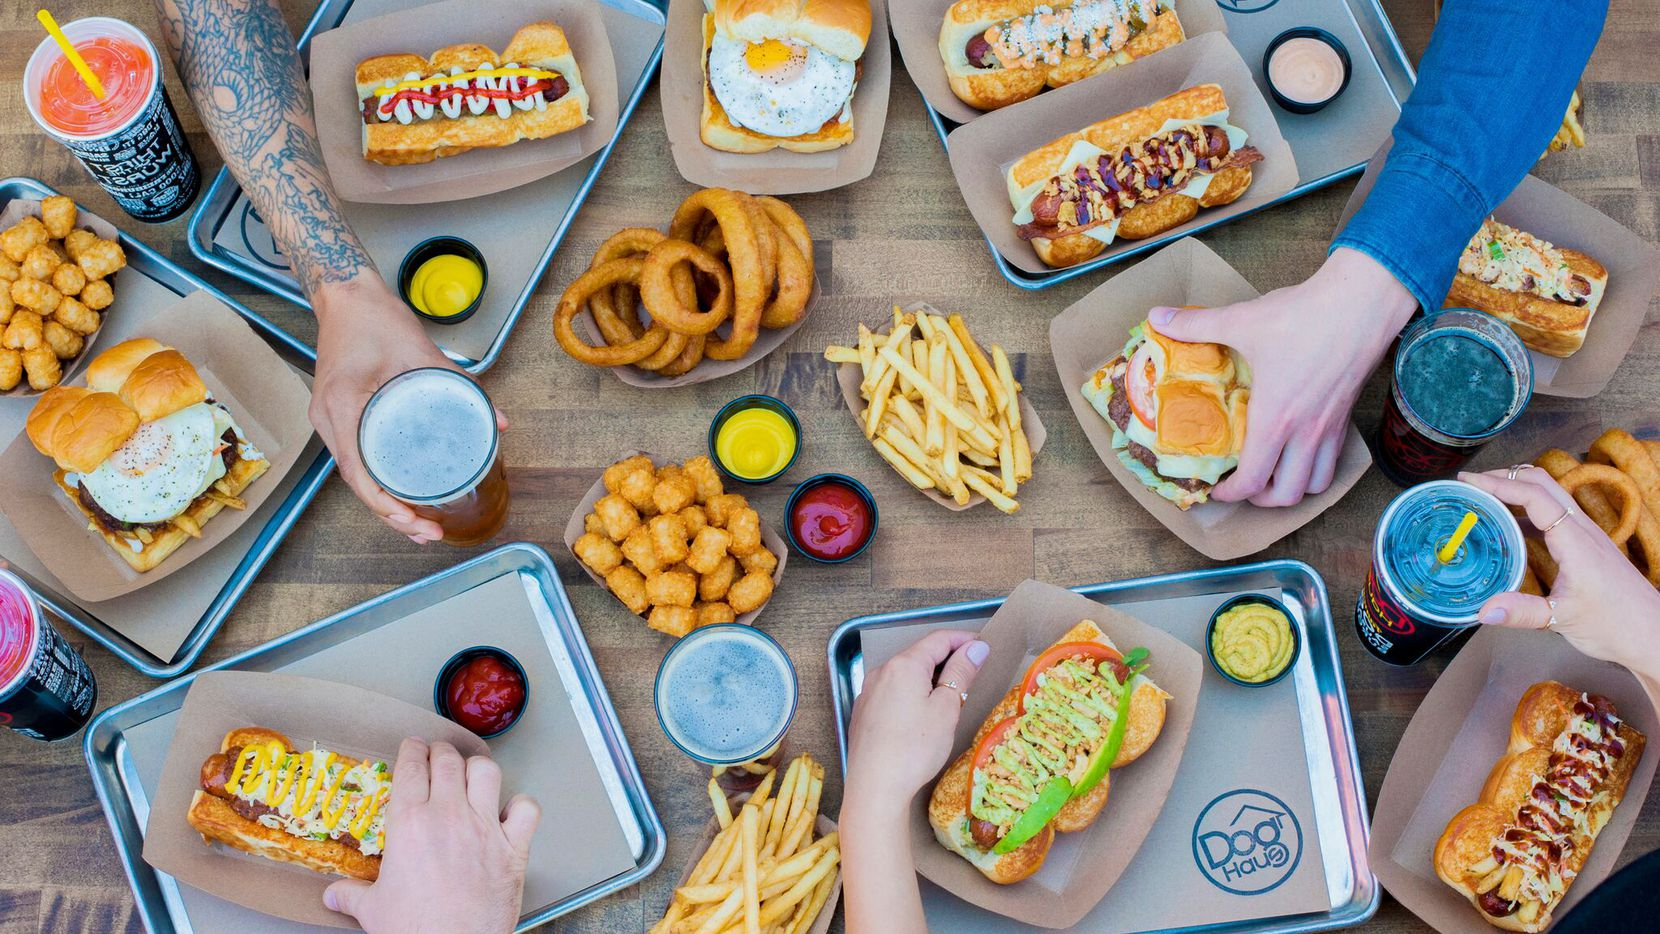 Dog Haus is a hot-dog franchise that's opening in Arlington in late summer 2019.